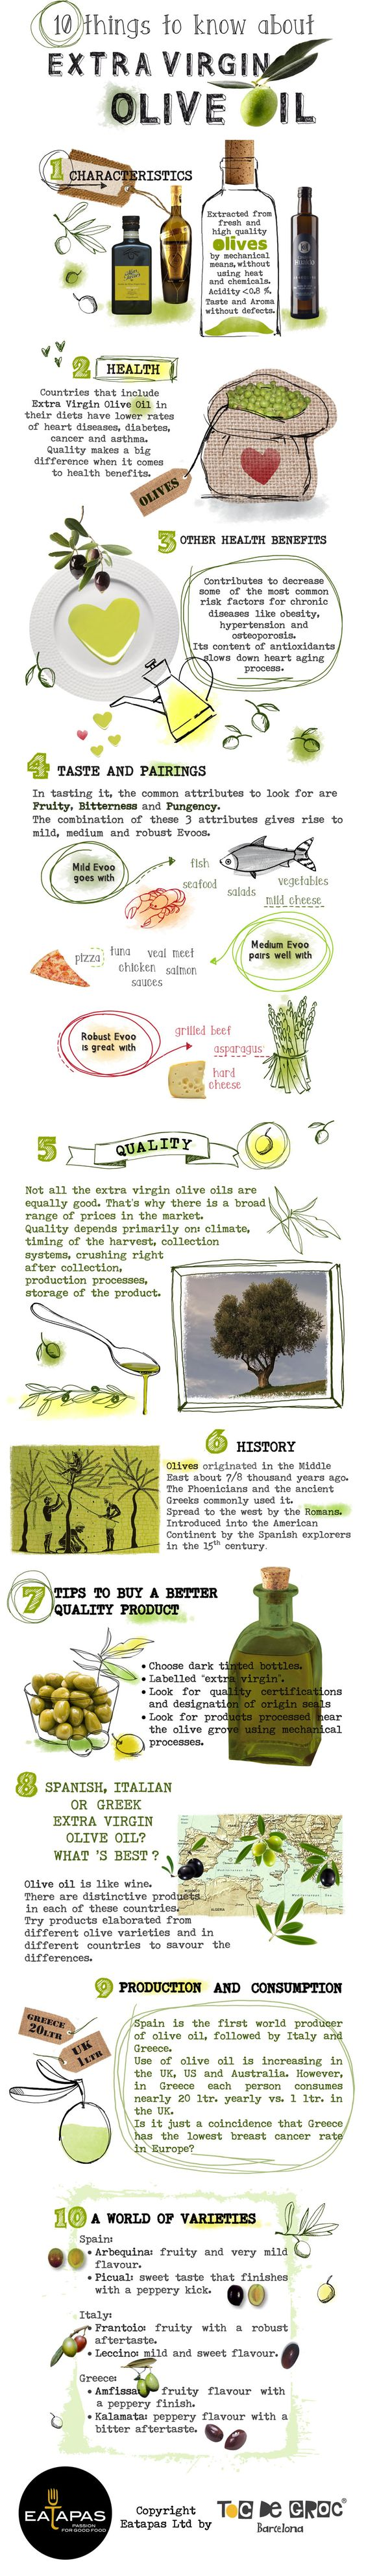 10-things-to-know-about-olive-oil.jpg